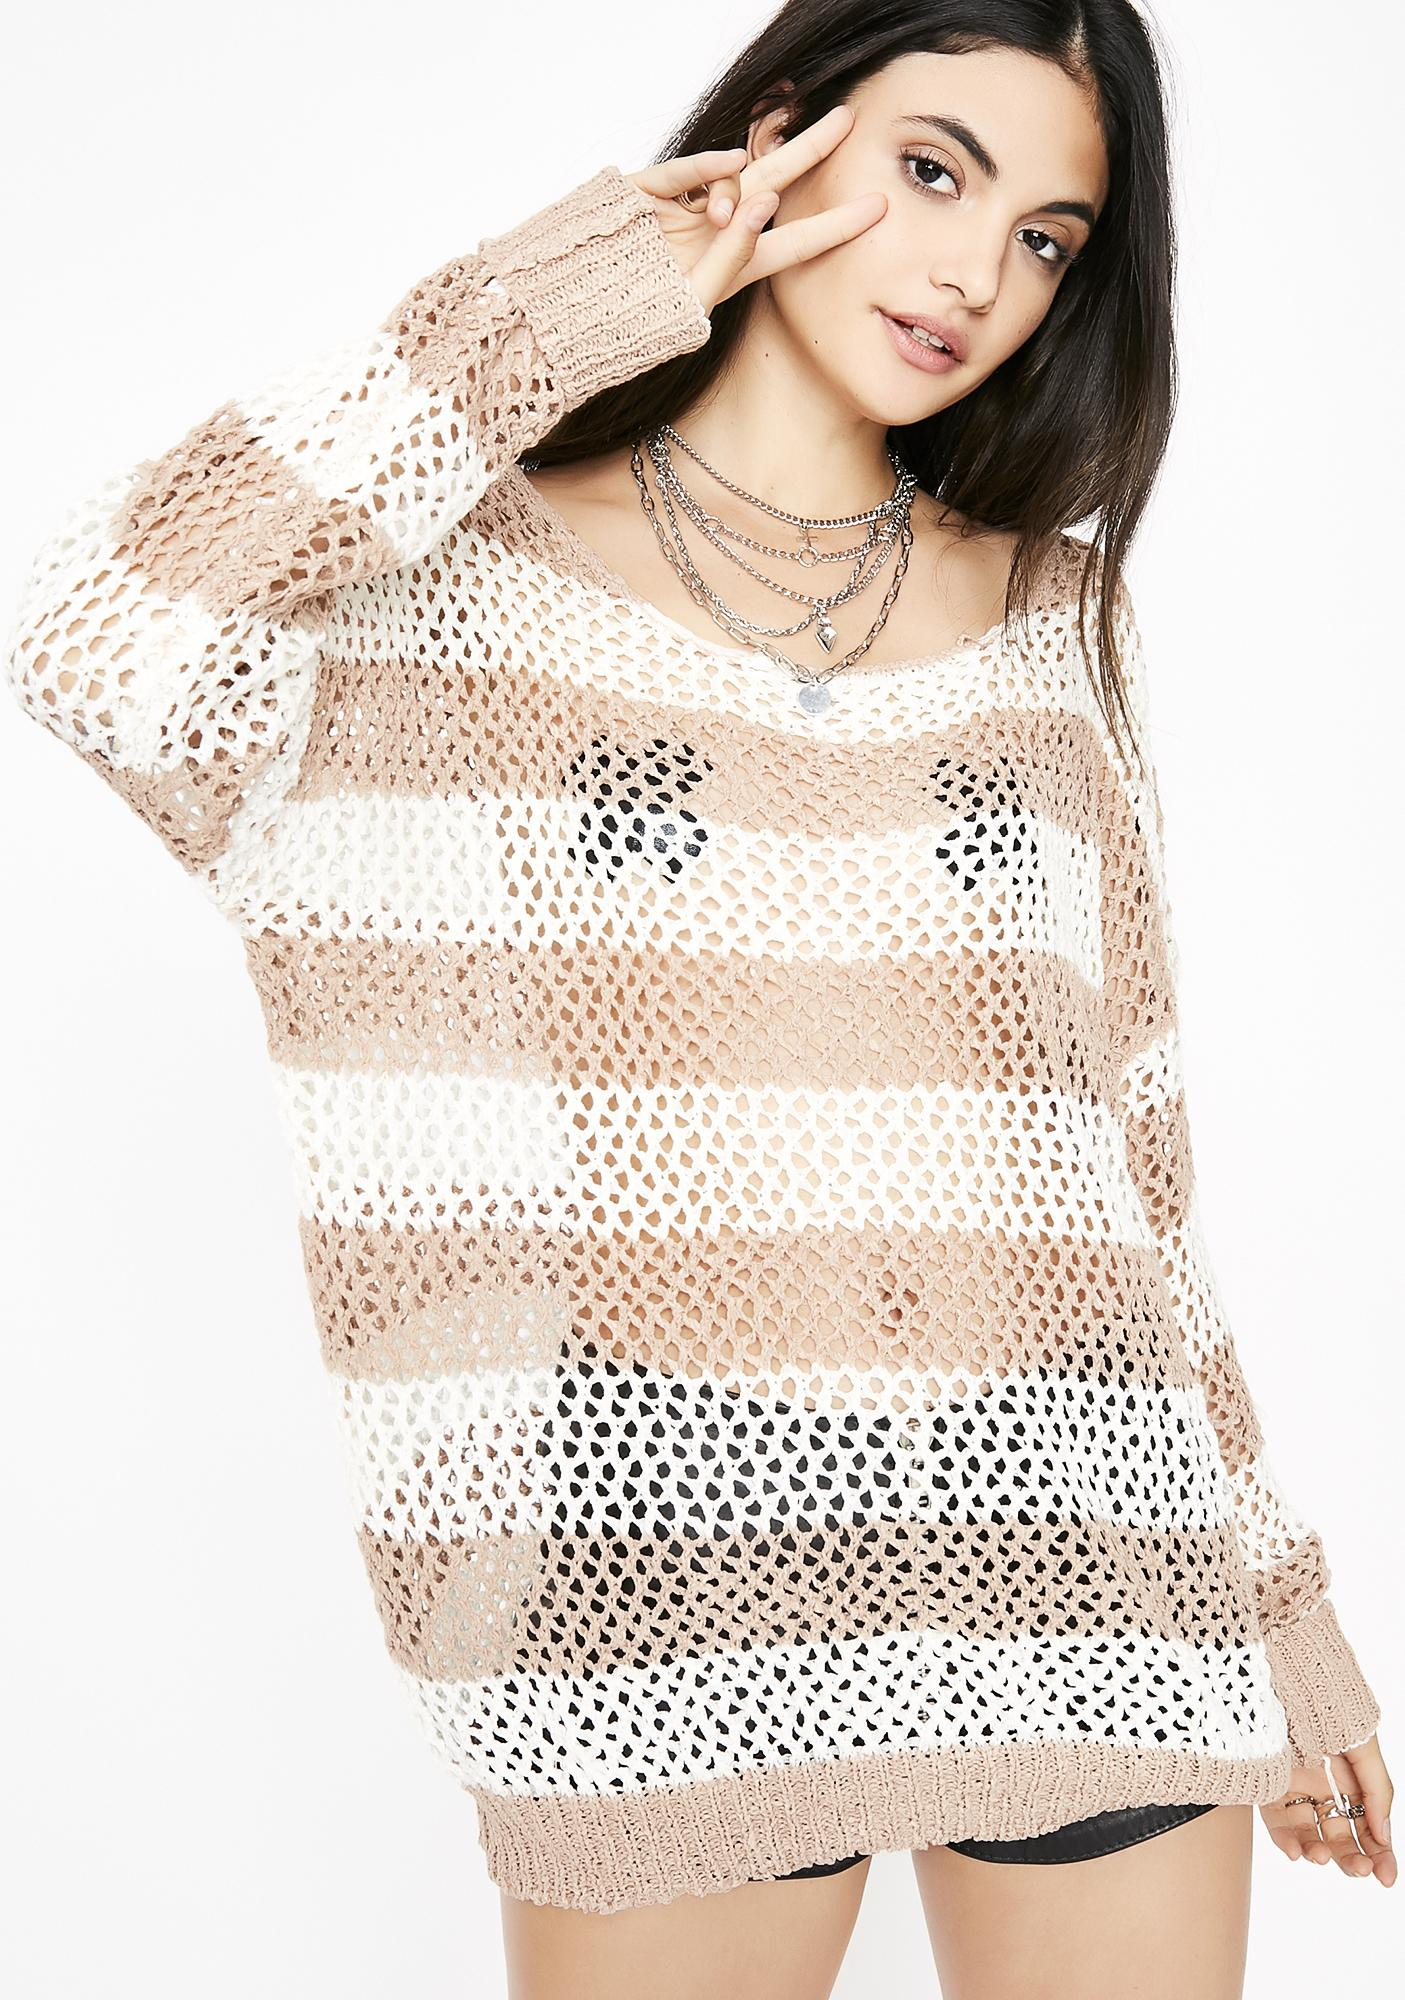 The Best Time Striped Sweater by O O